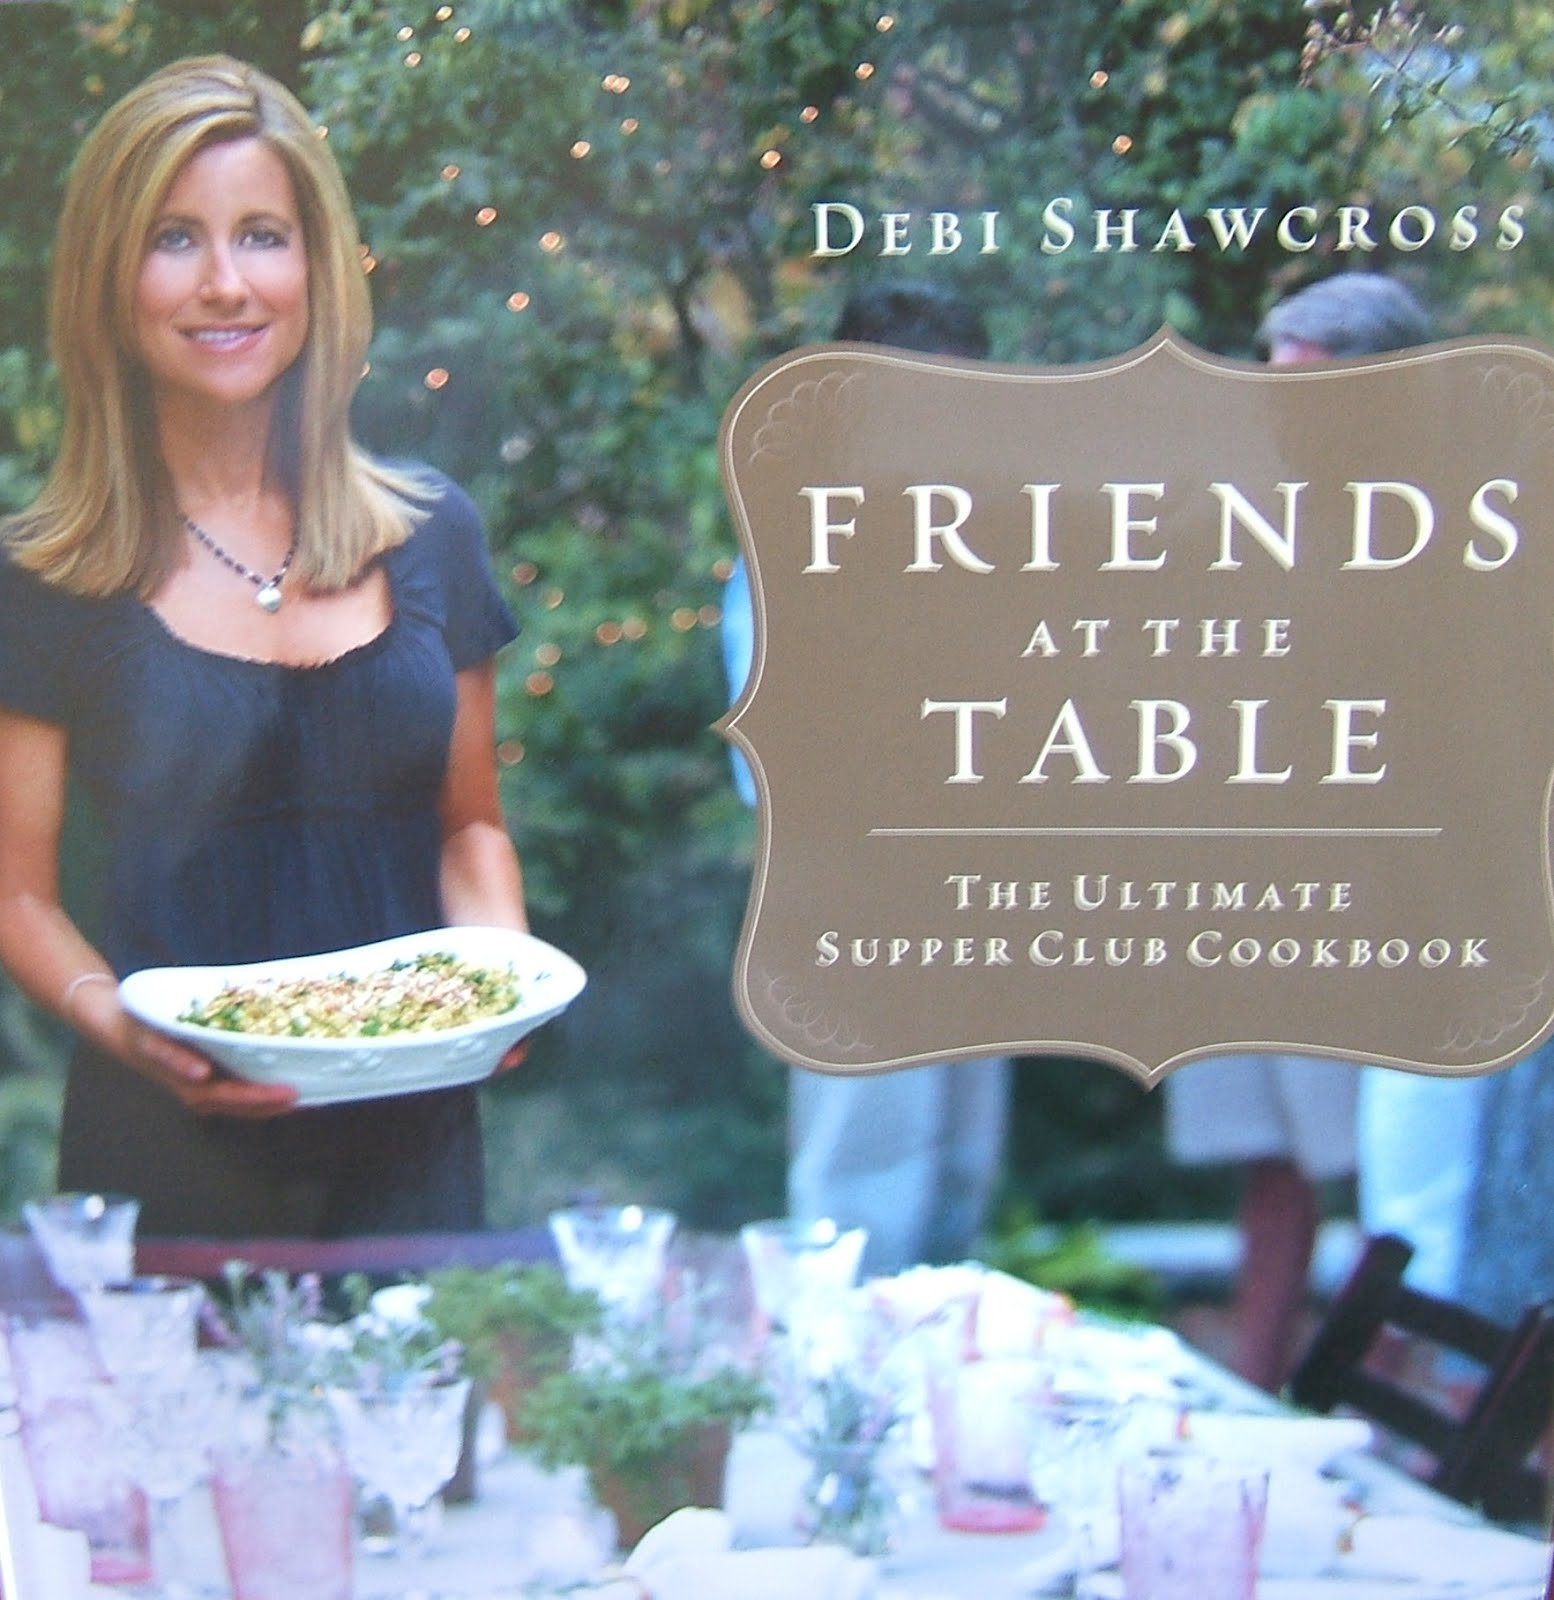 I Won the Friends at the Table Cookbook